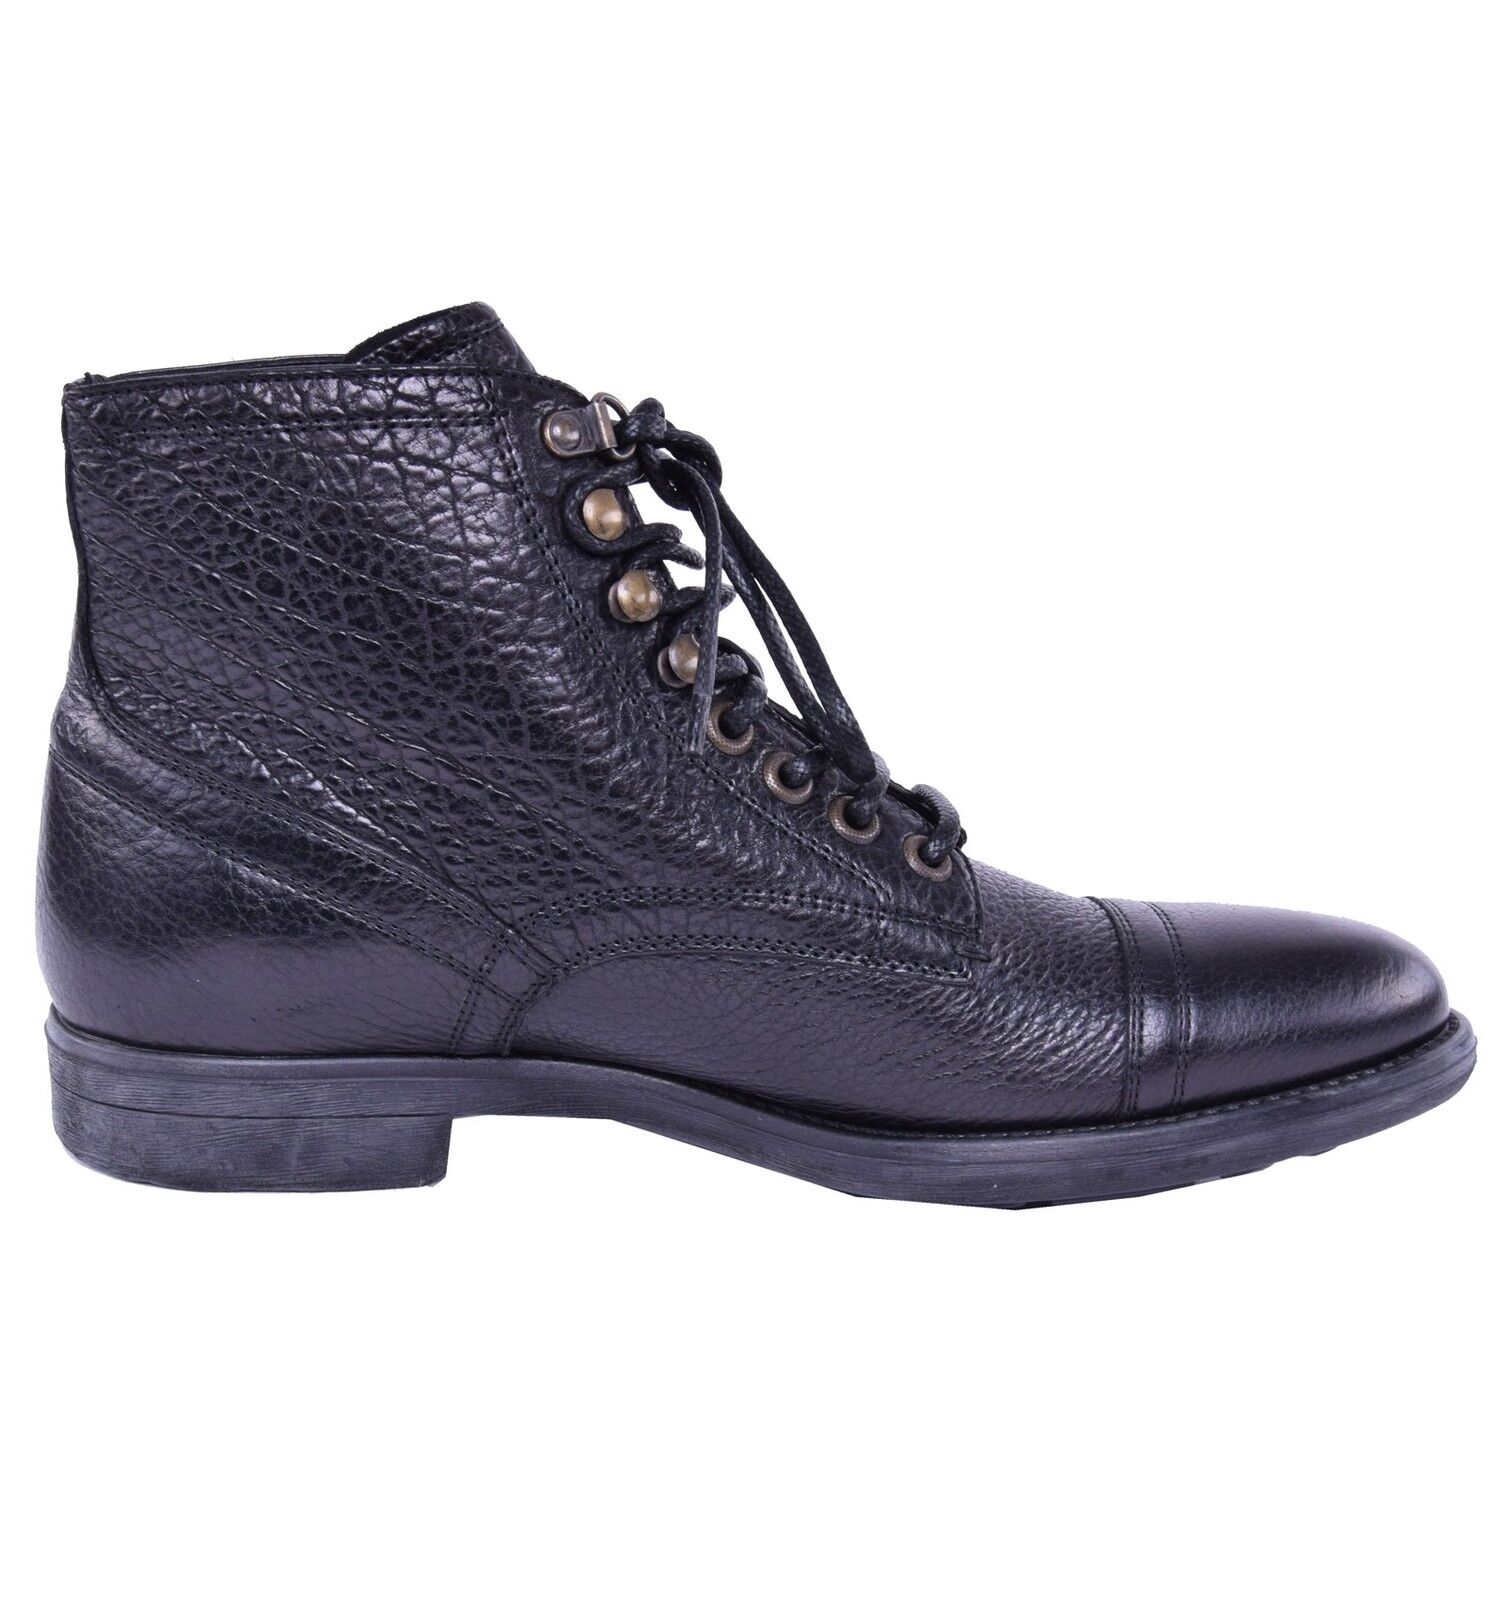 Dolce & Gabbana SIRACUSA Bison Ankle Boots Shoes Black Boots Black 03834